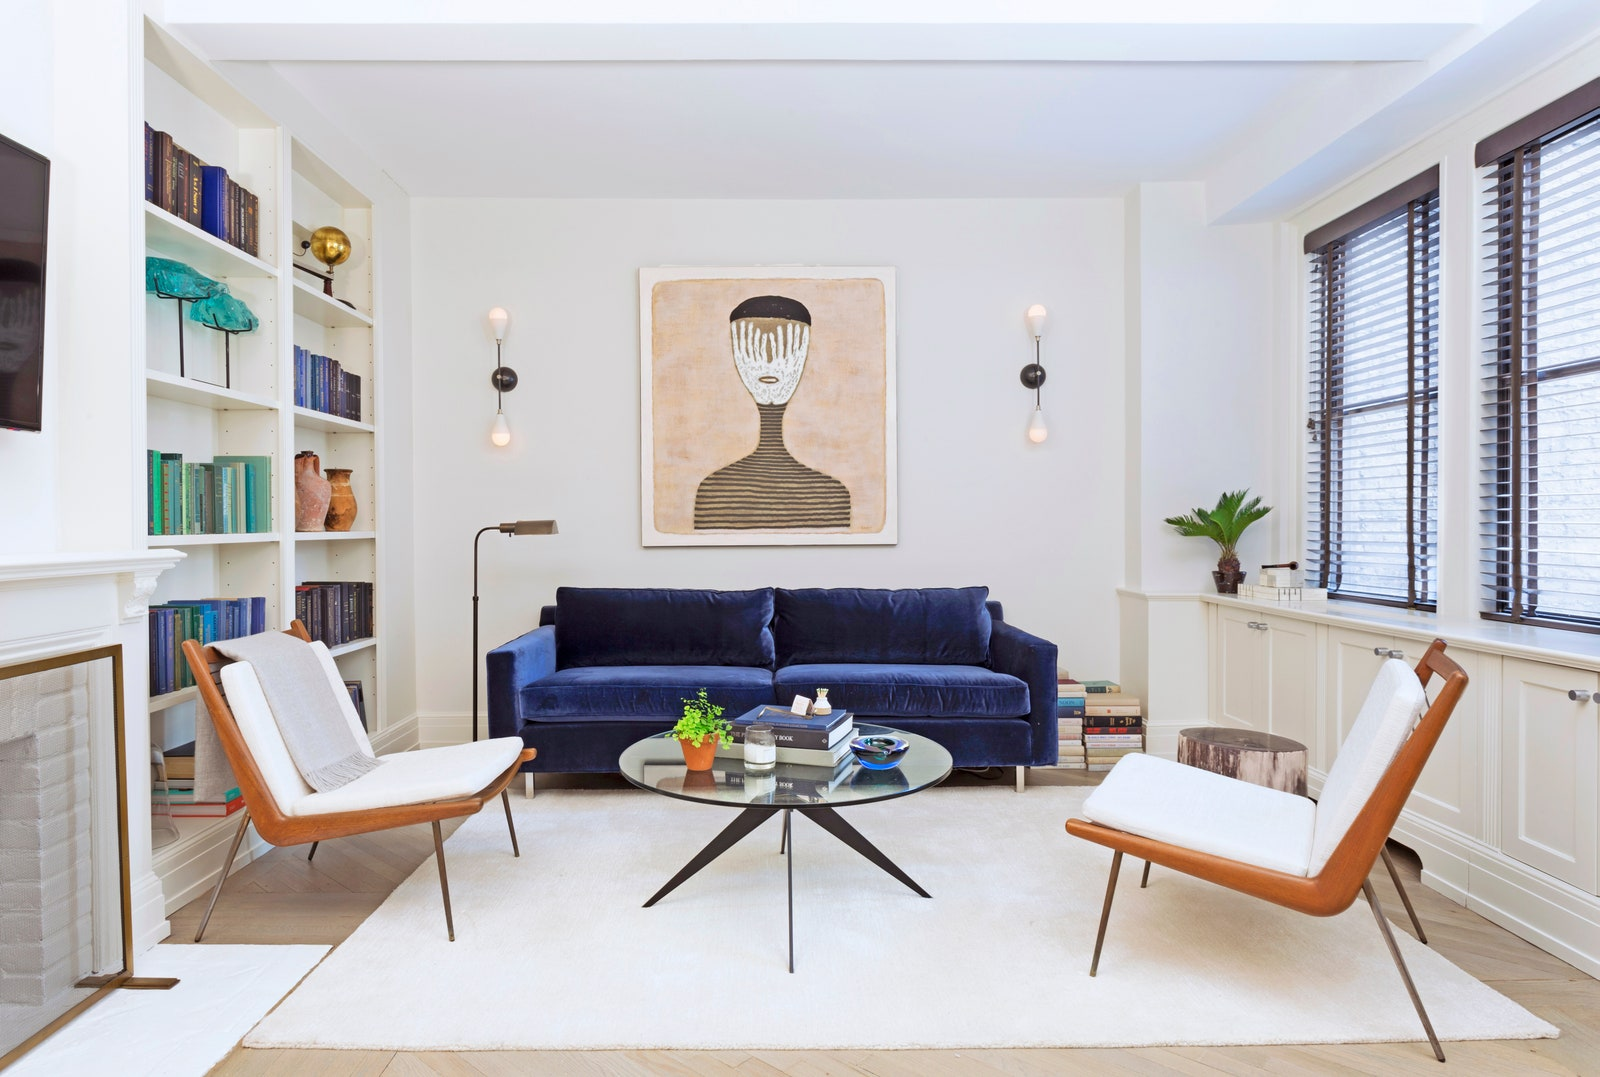 5 Incredible Features That Make All Home Space Useful